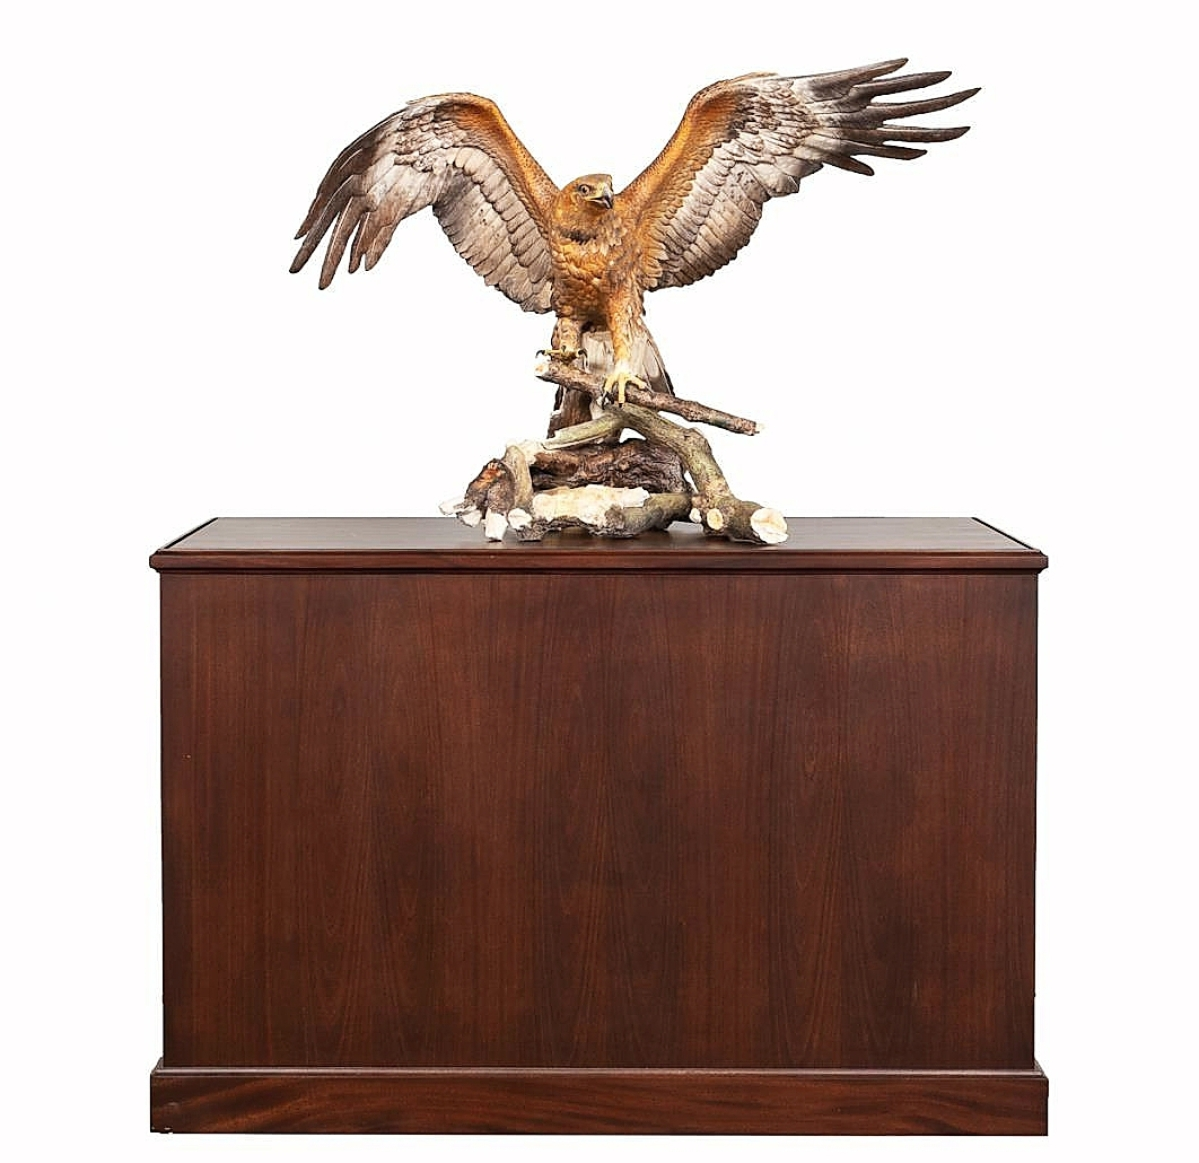 The lifesize birds done in extraordinary detail by Boehm (American, founded 1953) are extremely fragile and rarely survive in perfectly intact condition; this cased Golden Eagle porcelain bisque figure had a small restoration to one wing and brought $7,865. It will be flying — very slowly and carefully — to its new home in North Carolina ($4/6,000).